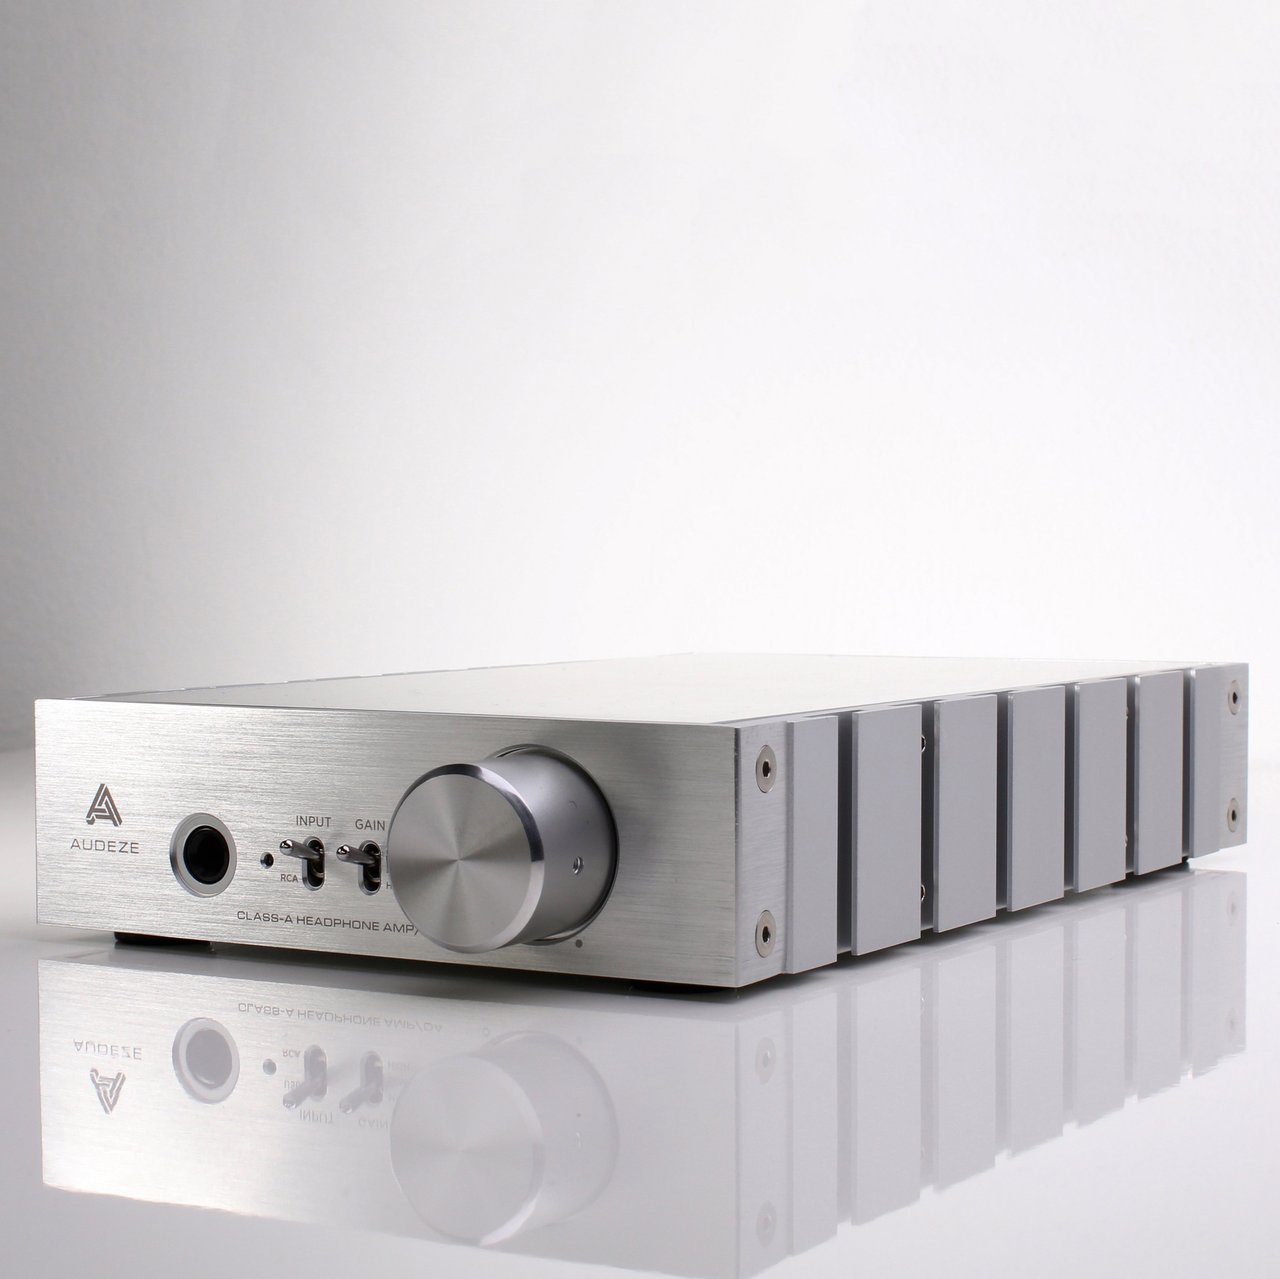 Deckard Class-A AMP/DAC Headphone Amplifier